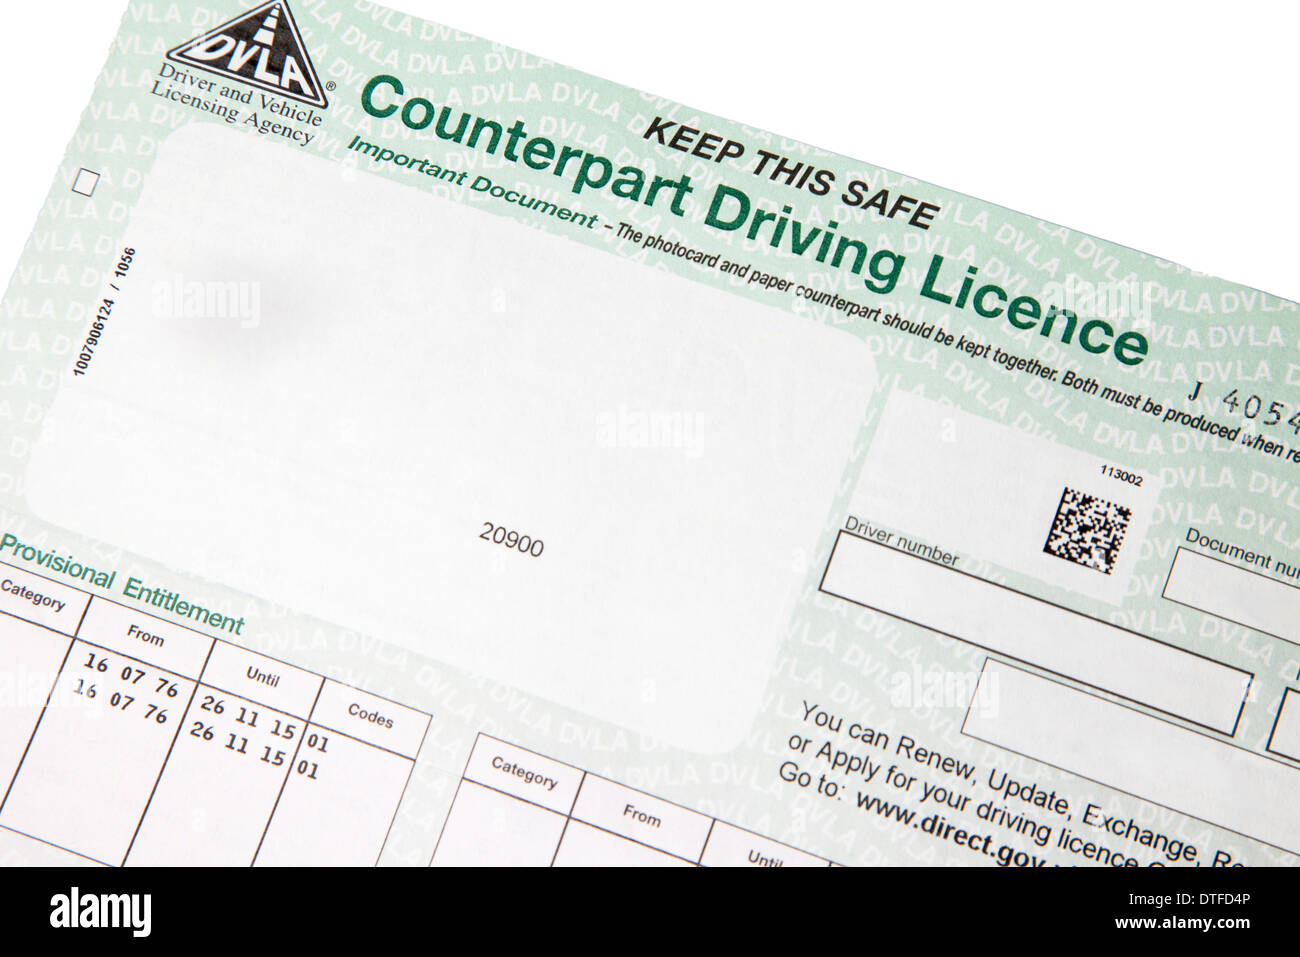 DVLA counterpart driving licence - Stock Image